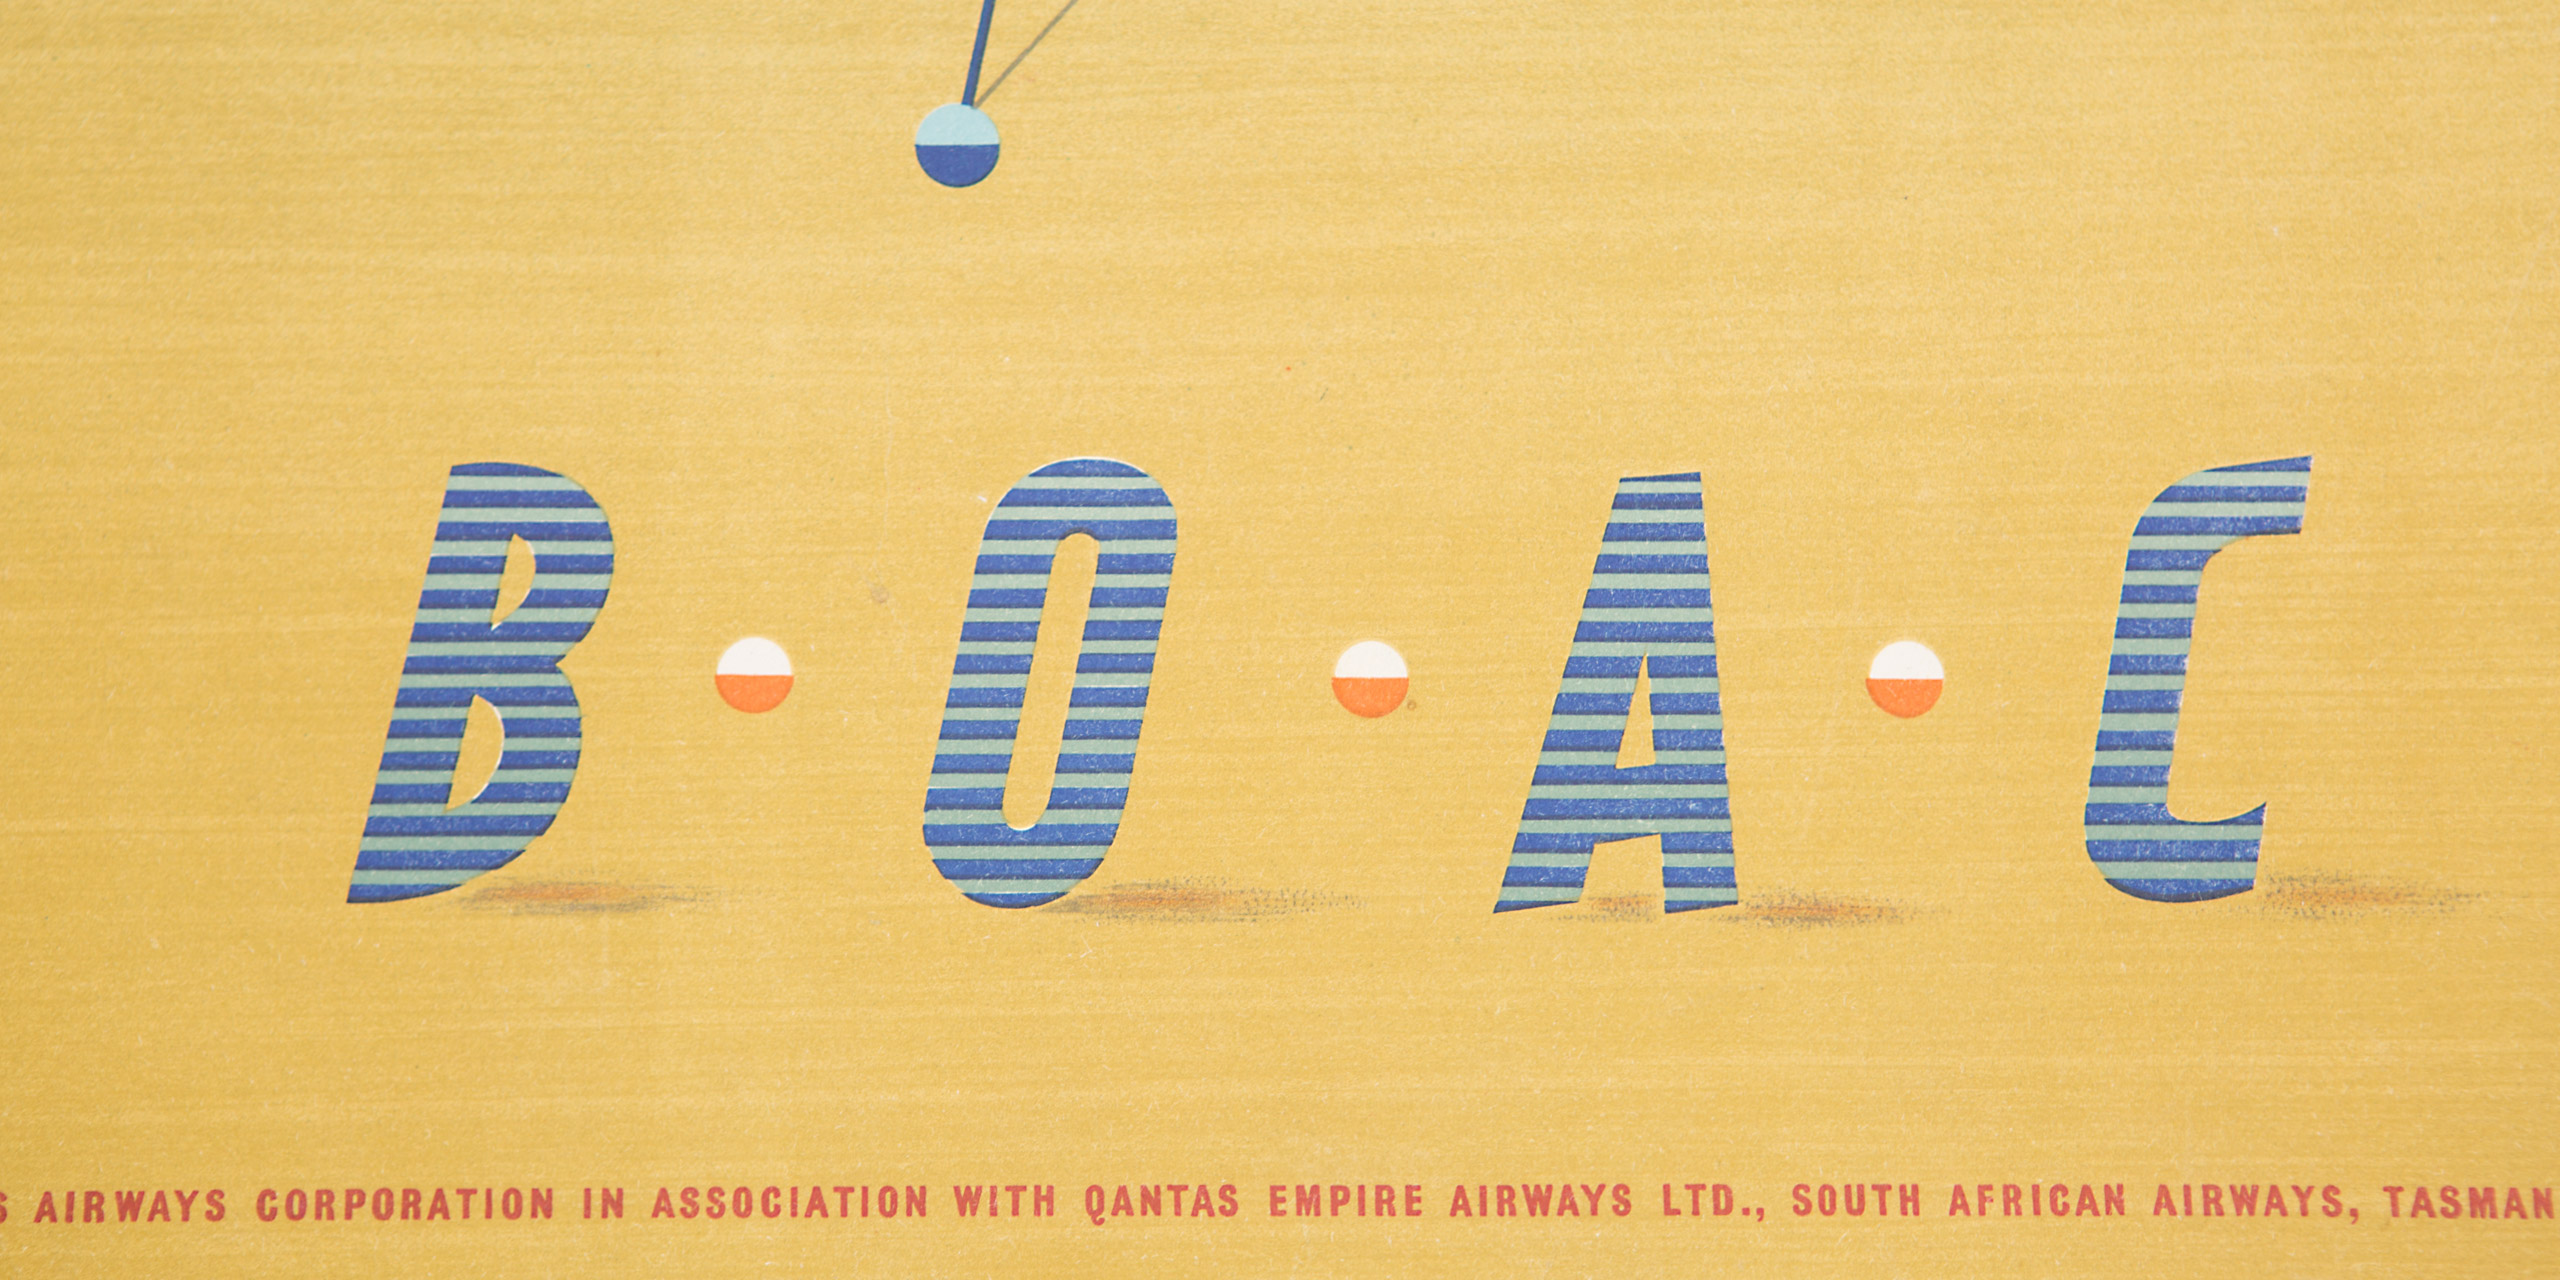 Fanfare by Wolpe used for a British Overseas Airways Corporation (BOAC) campaign, the forerunner of today's British Airways